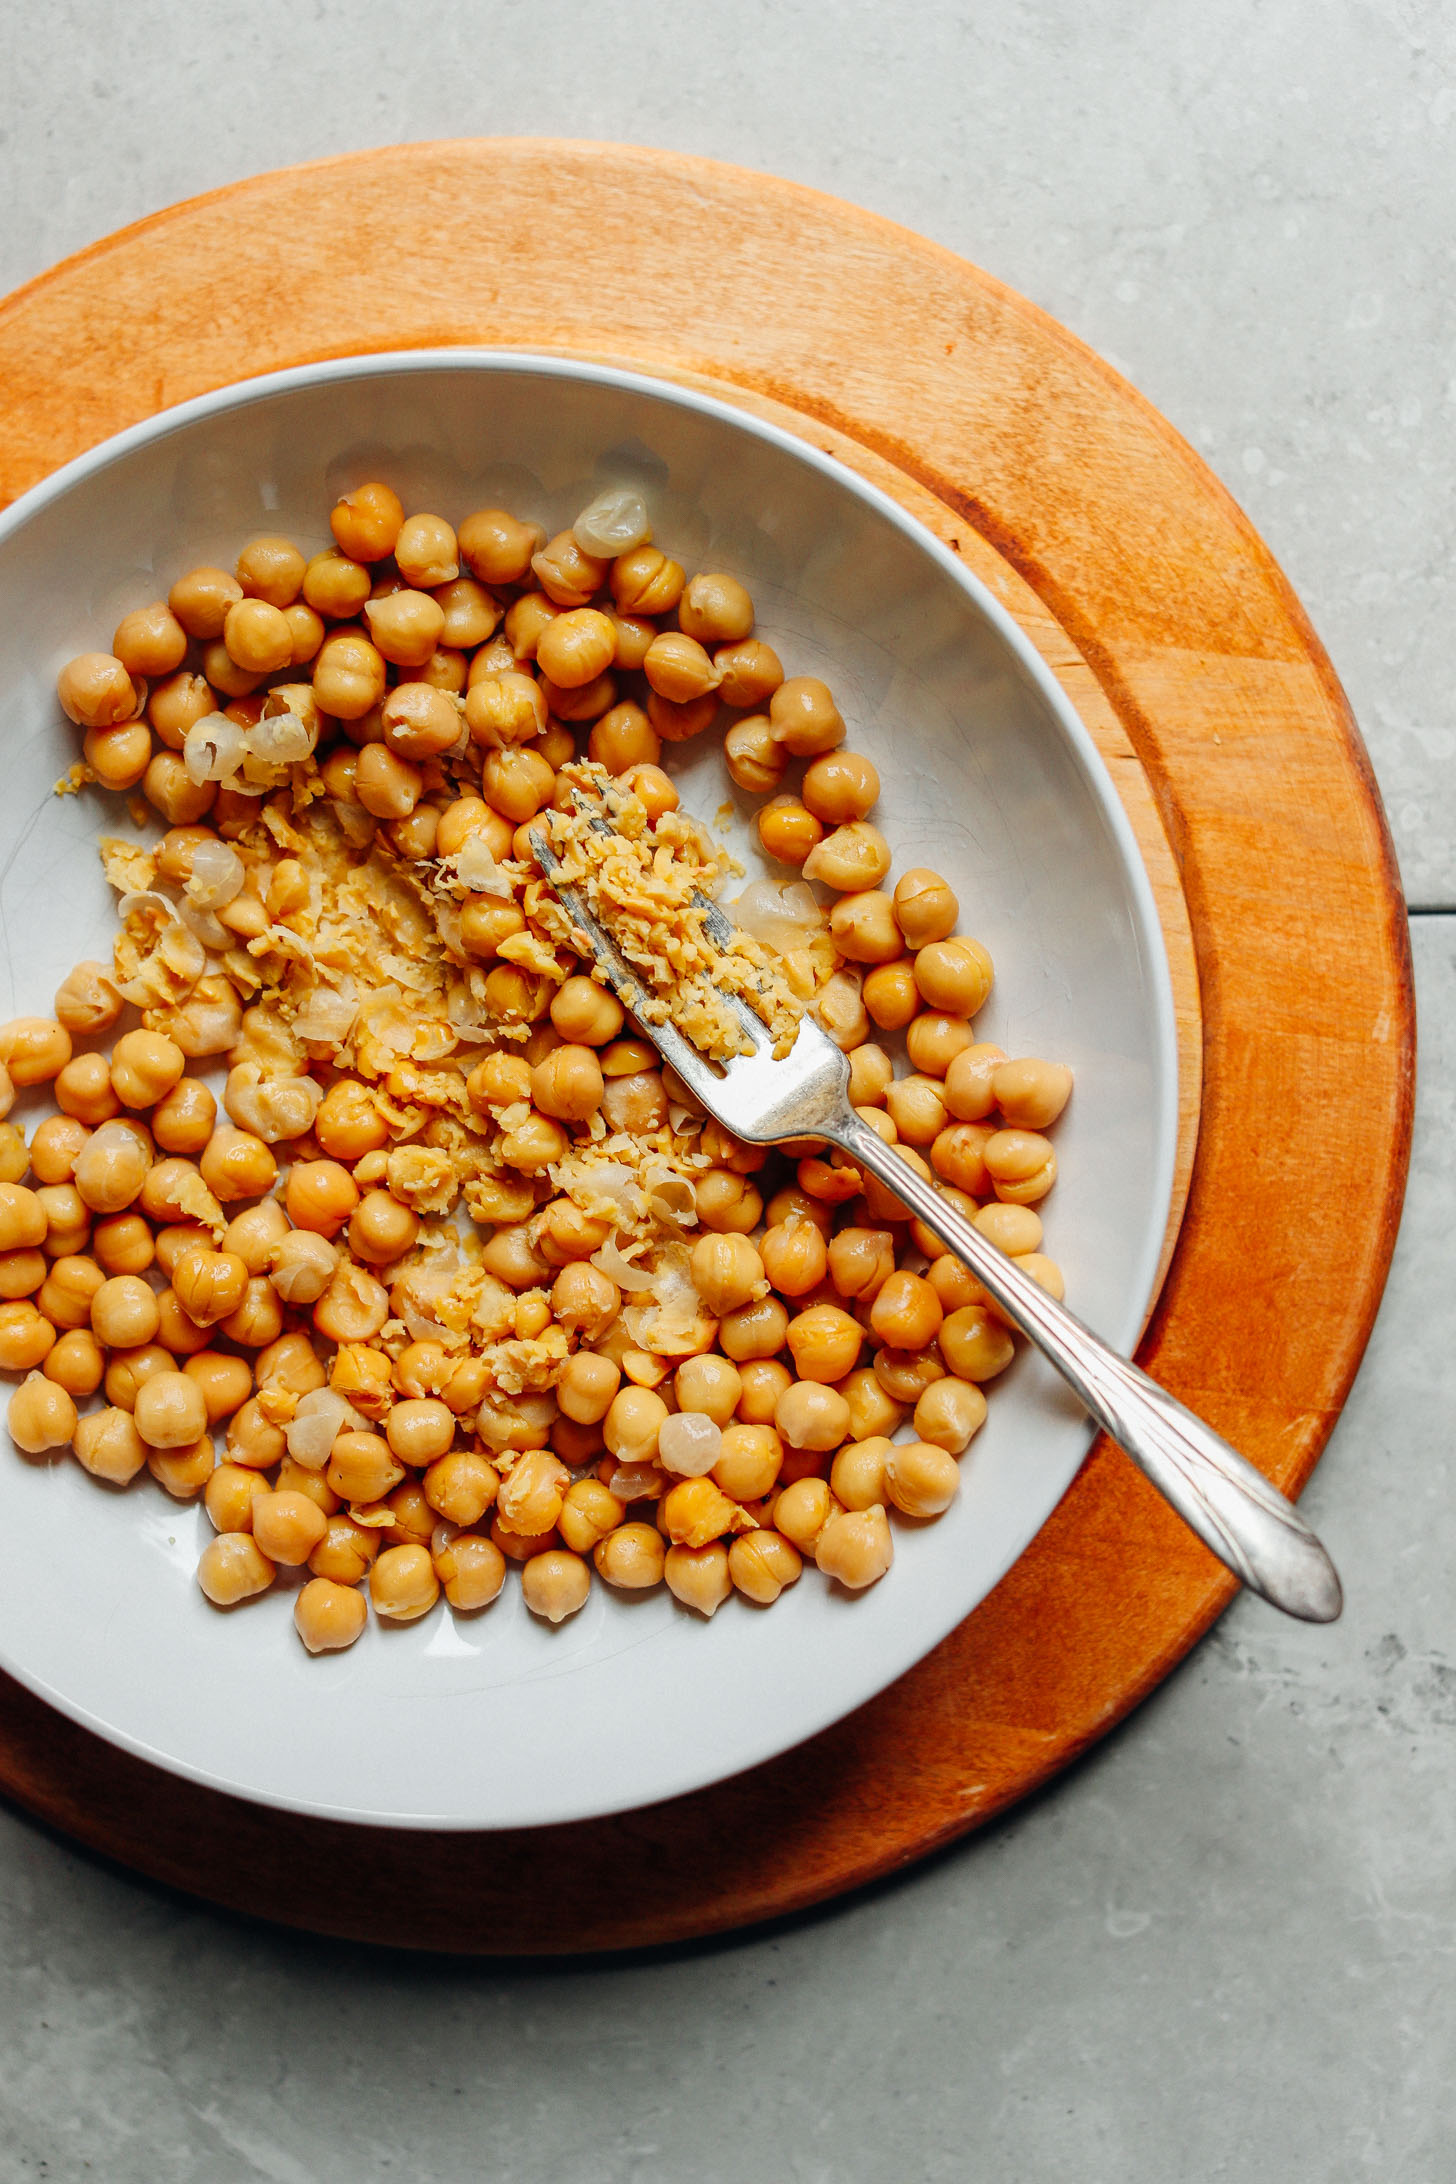 A plate of fiber- and protein-packed chickpeas showing some gently smashed by a fork